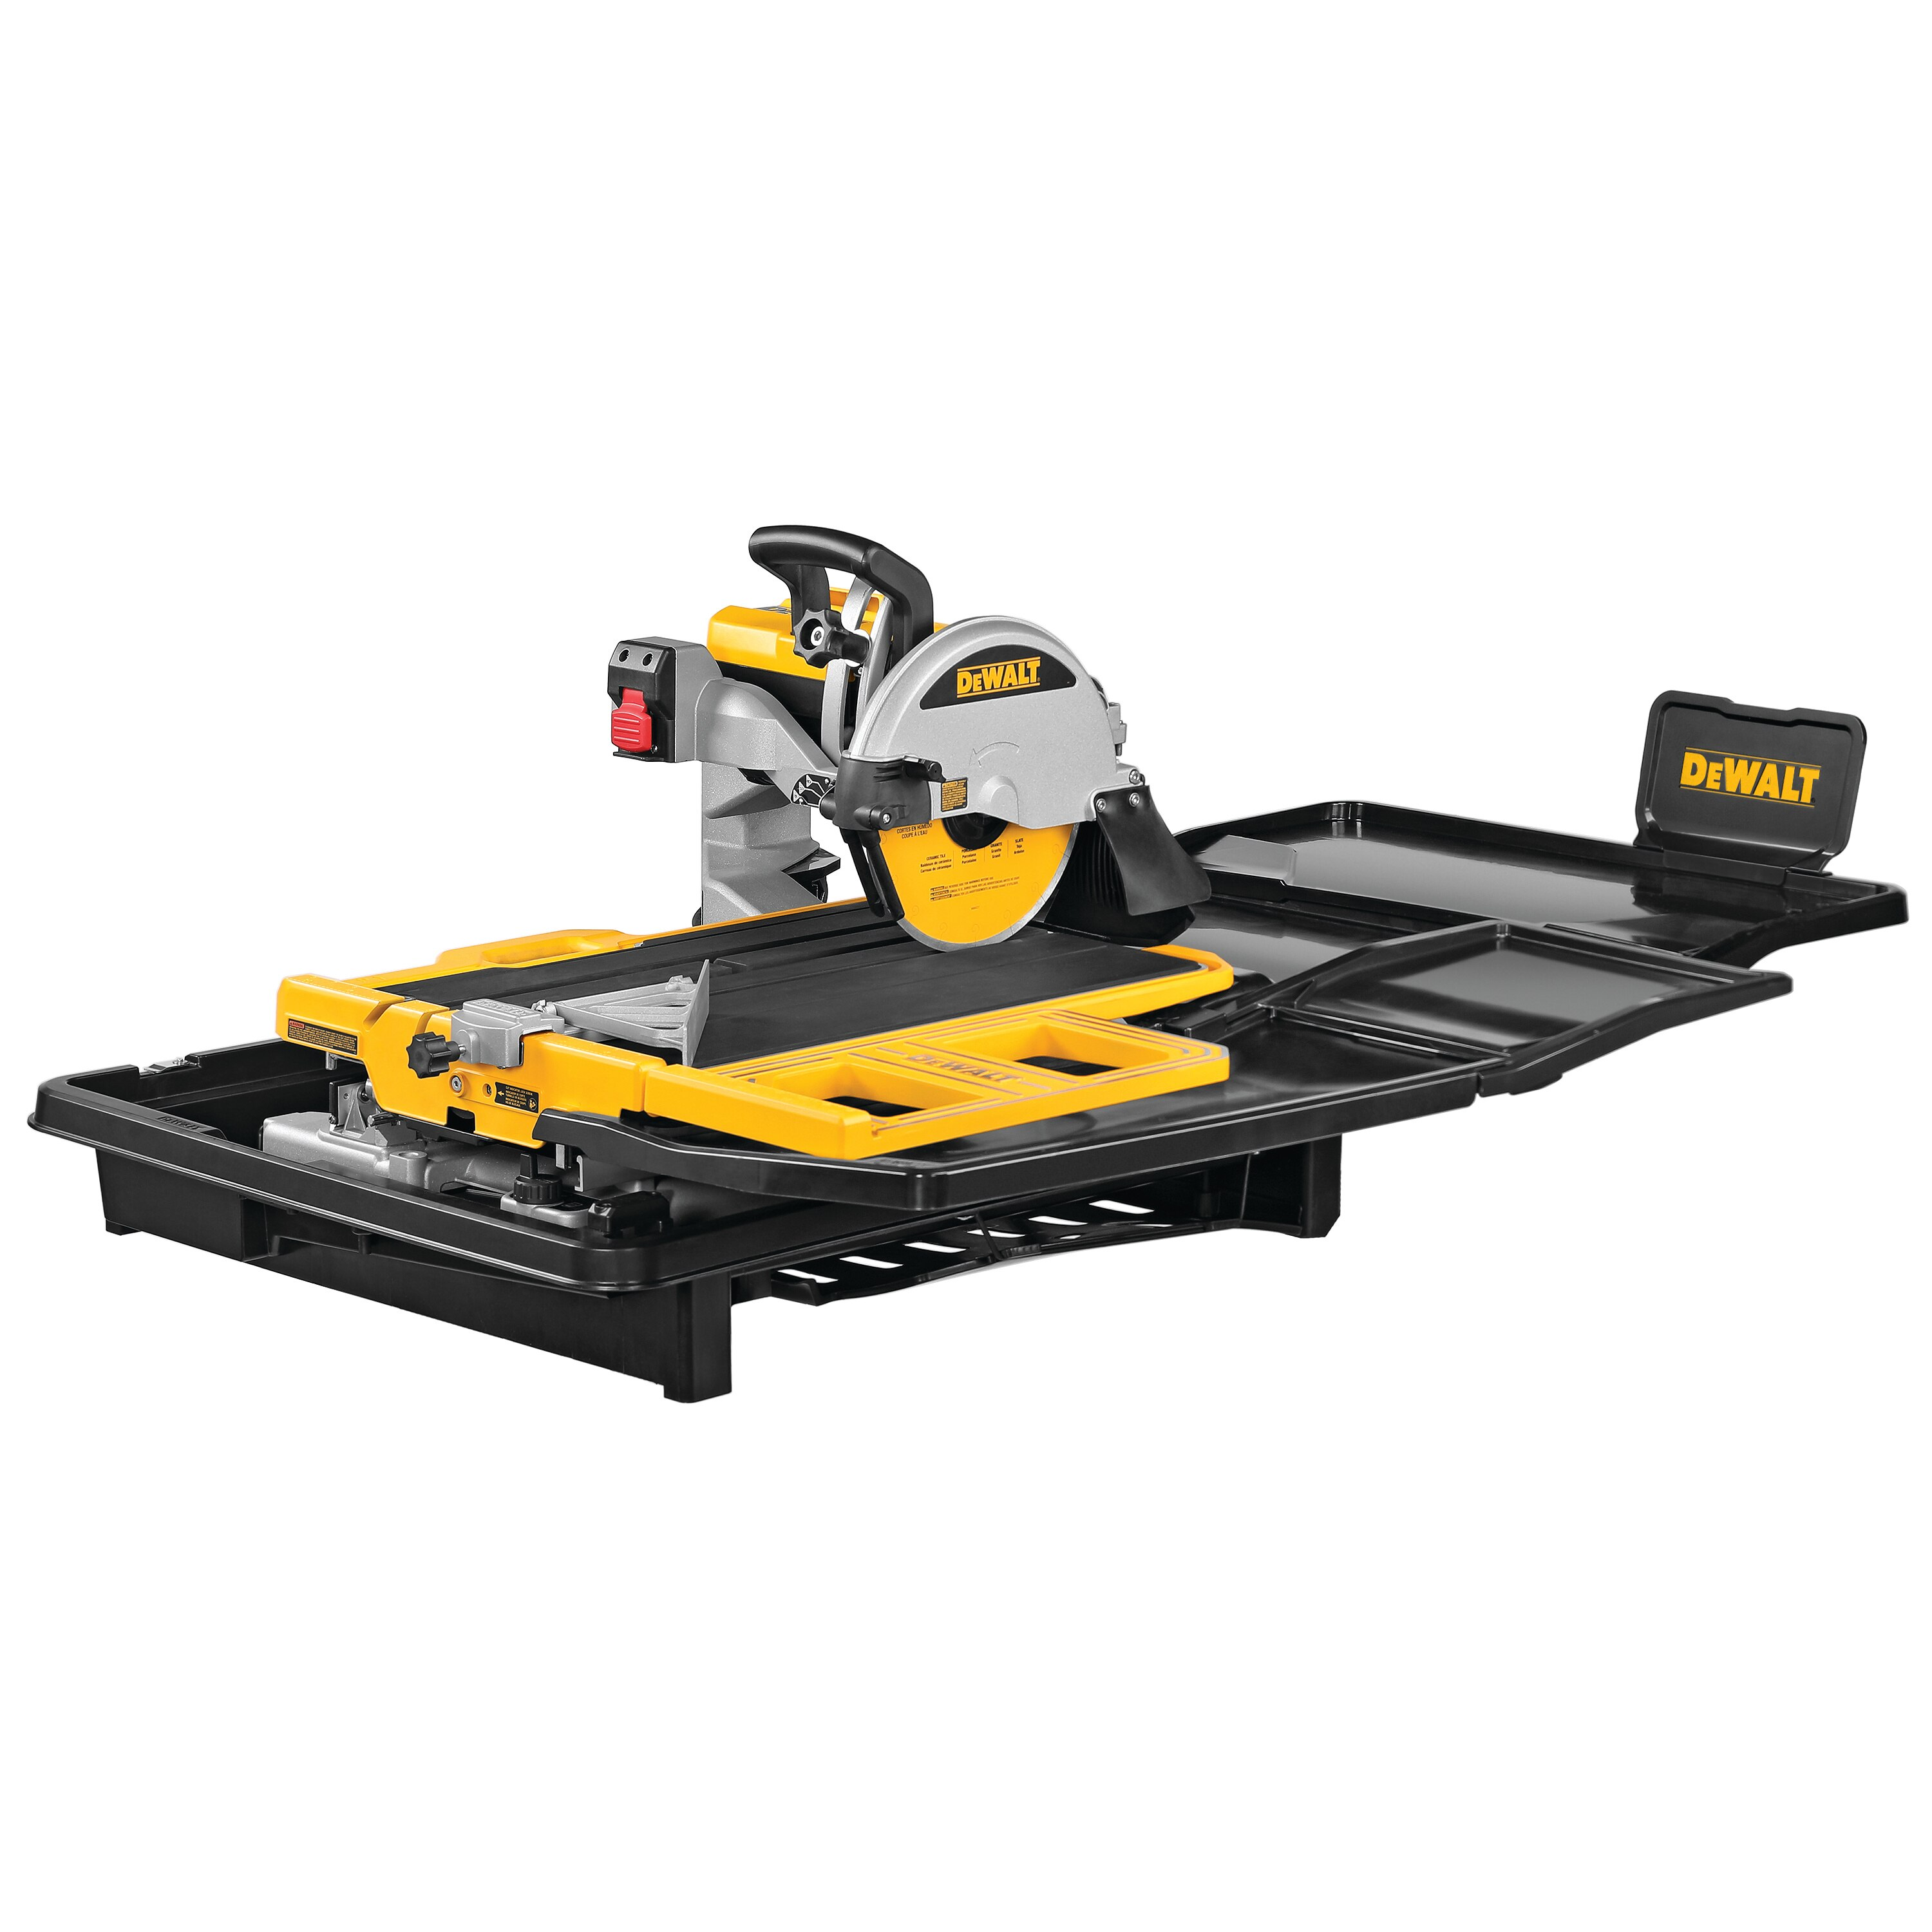 10 in high capacity wet tile saw